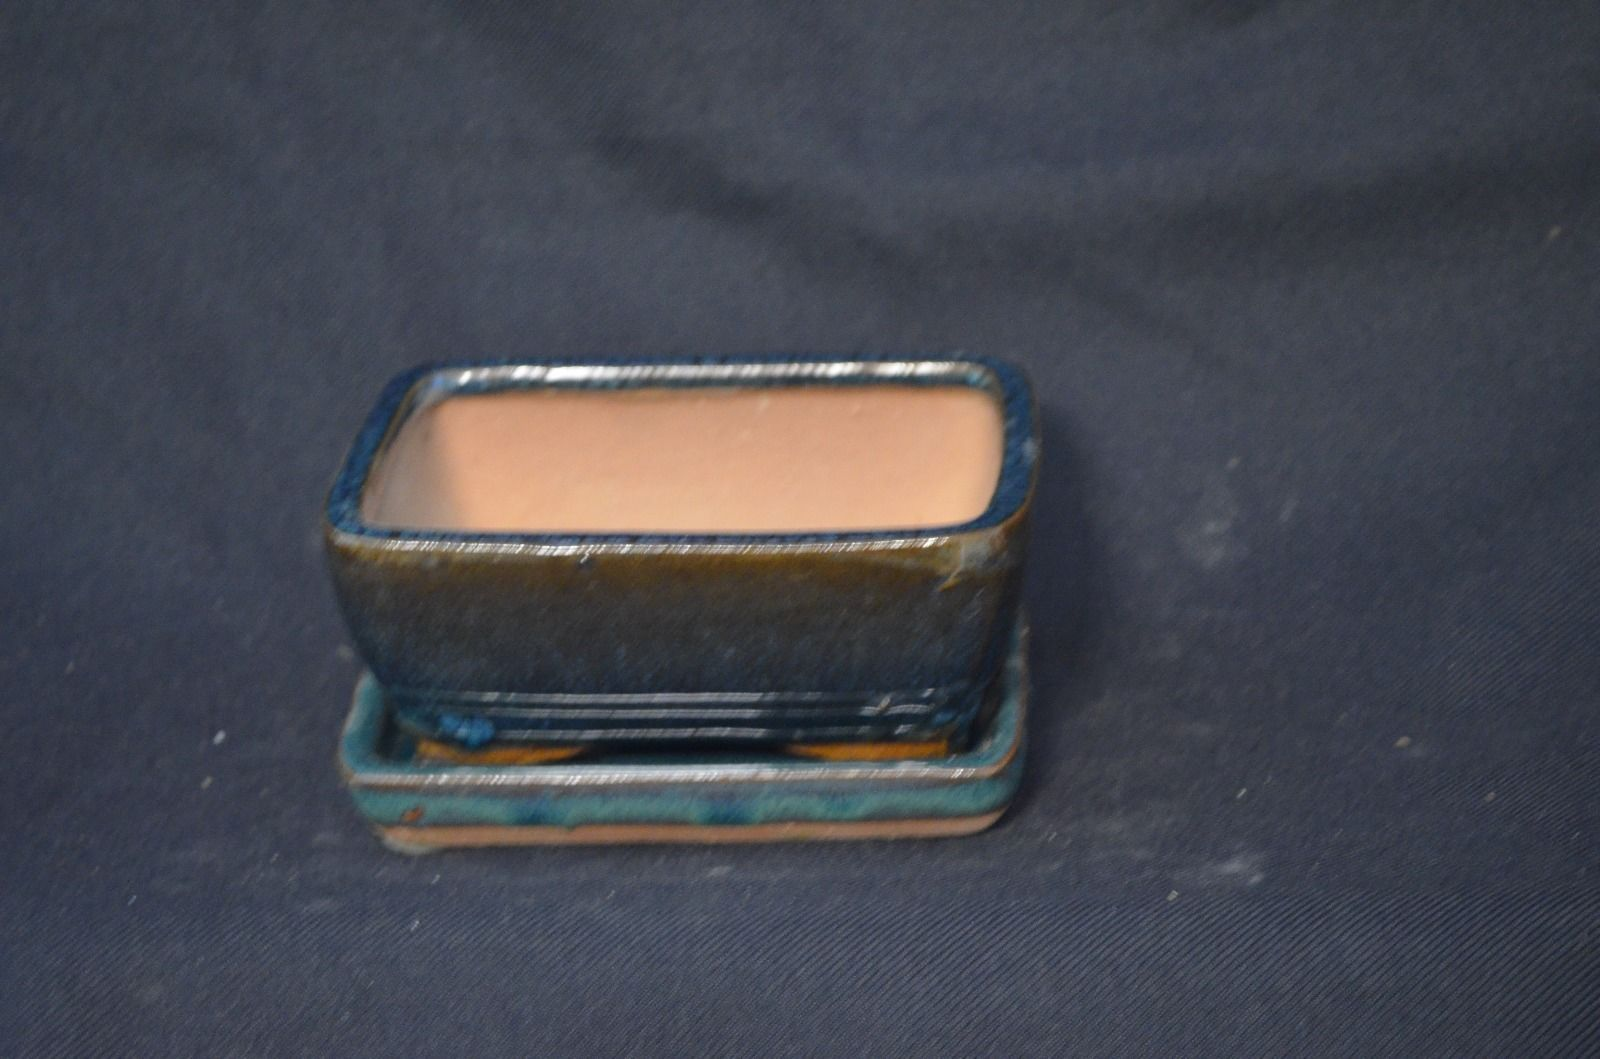 hard to find! oval green 7 pot set Bonsai pot with matching ceramic tray